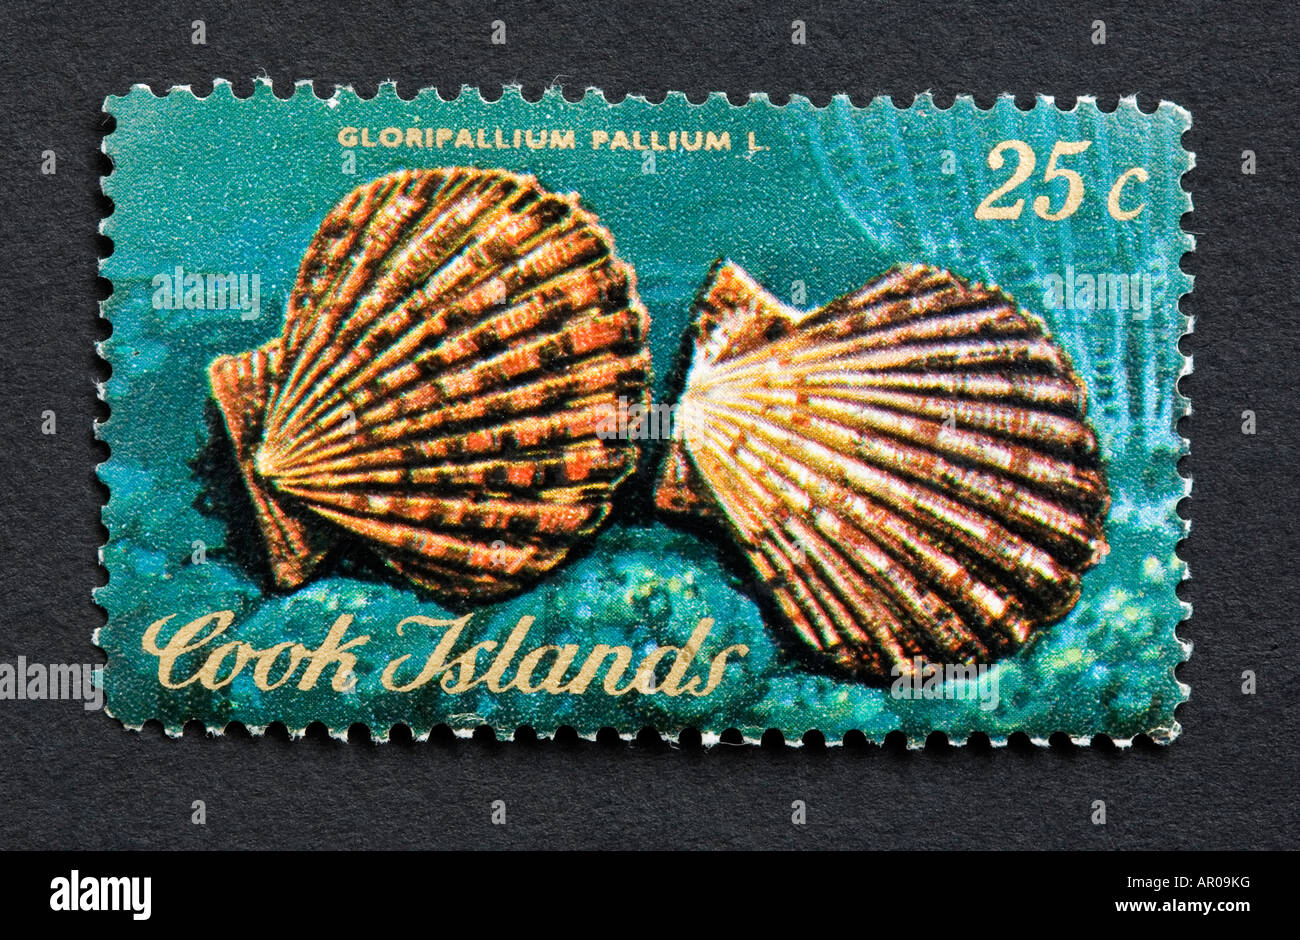 Cook Islands postage stamp - Stock Image